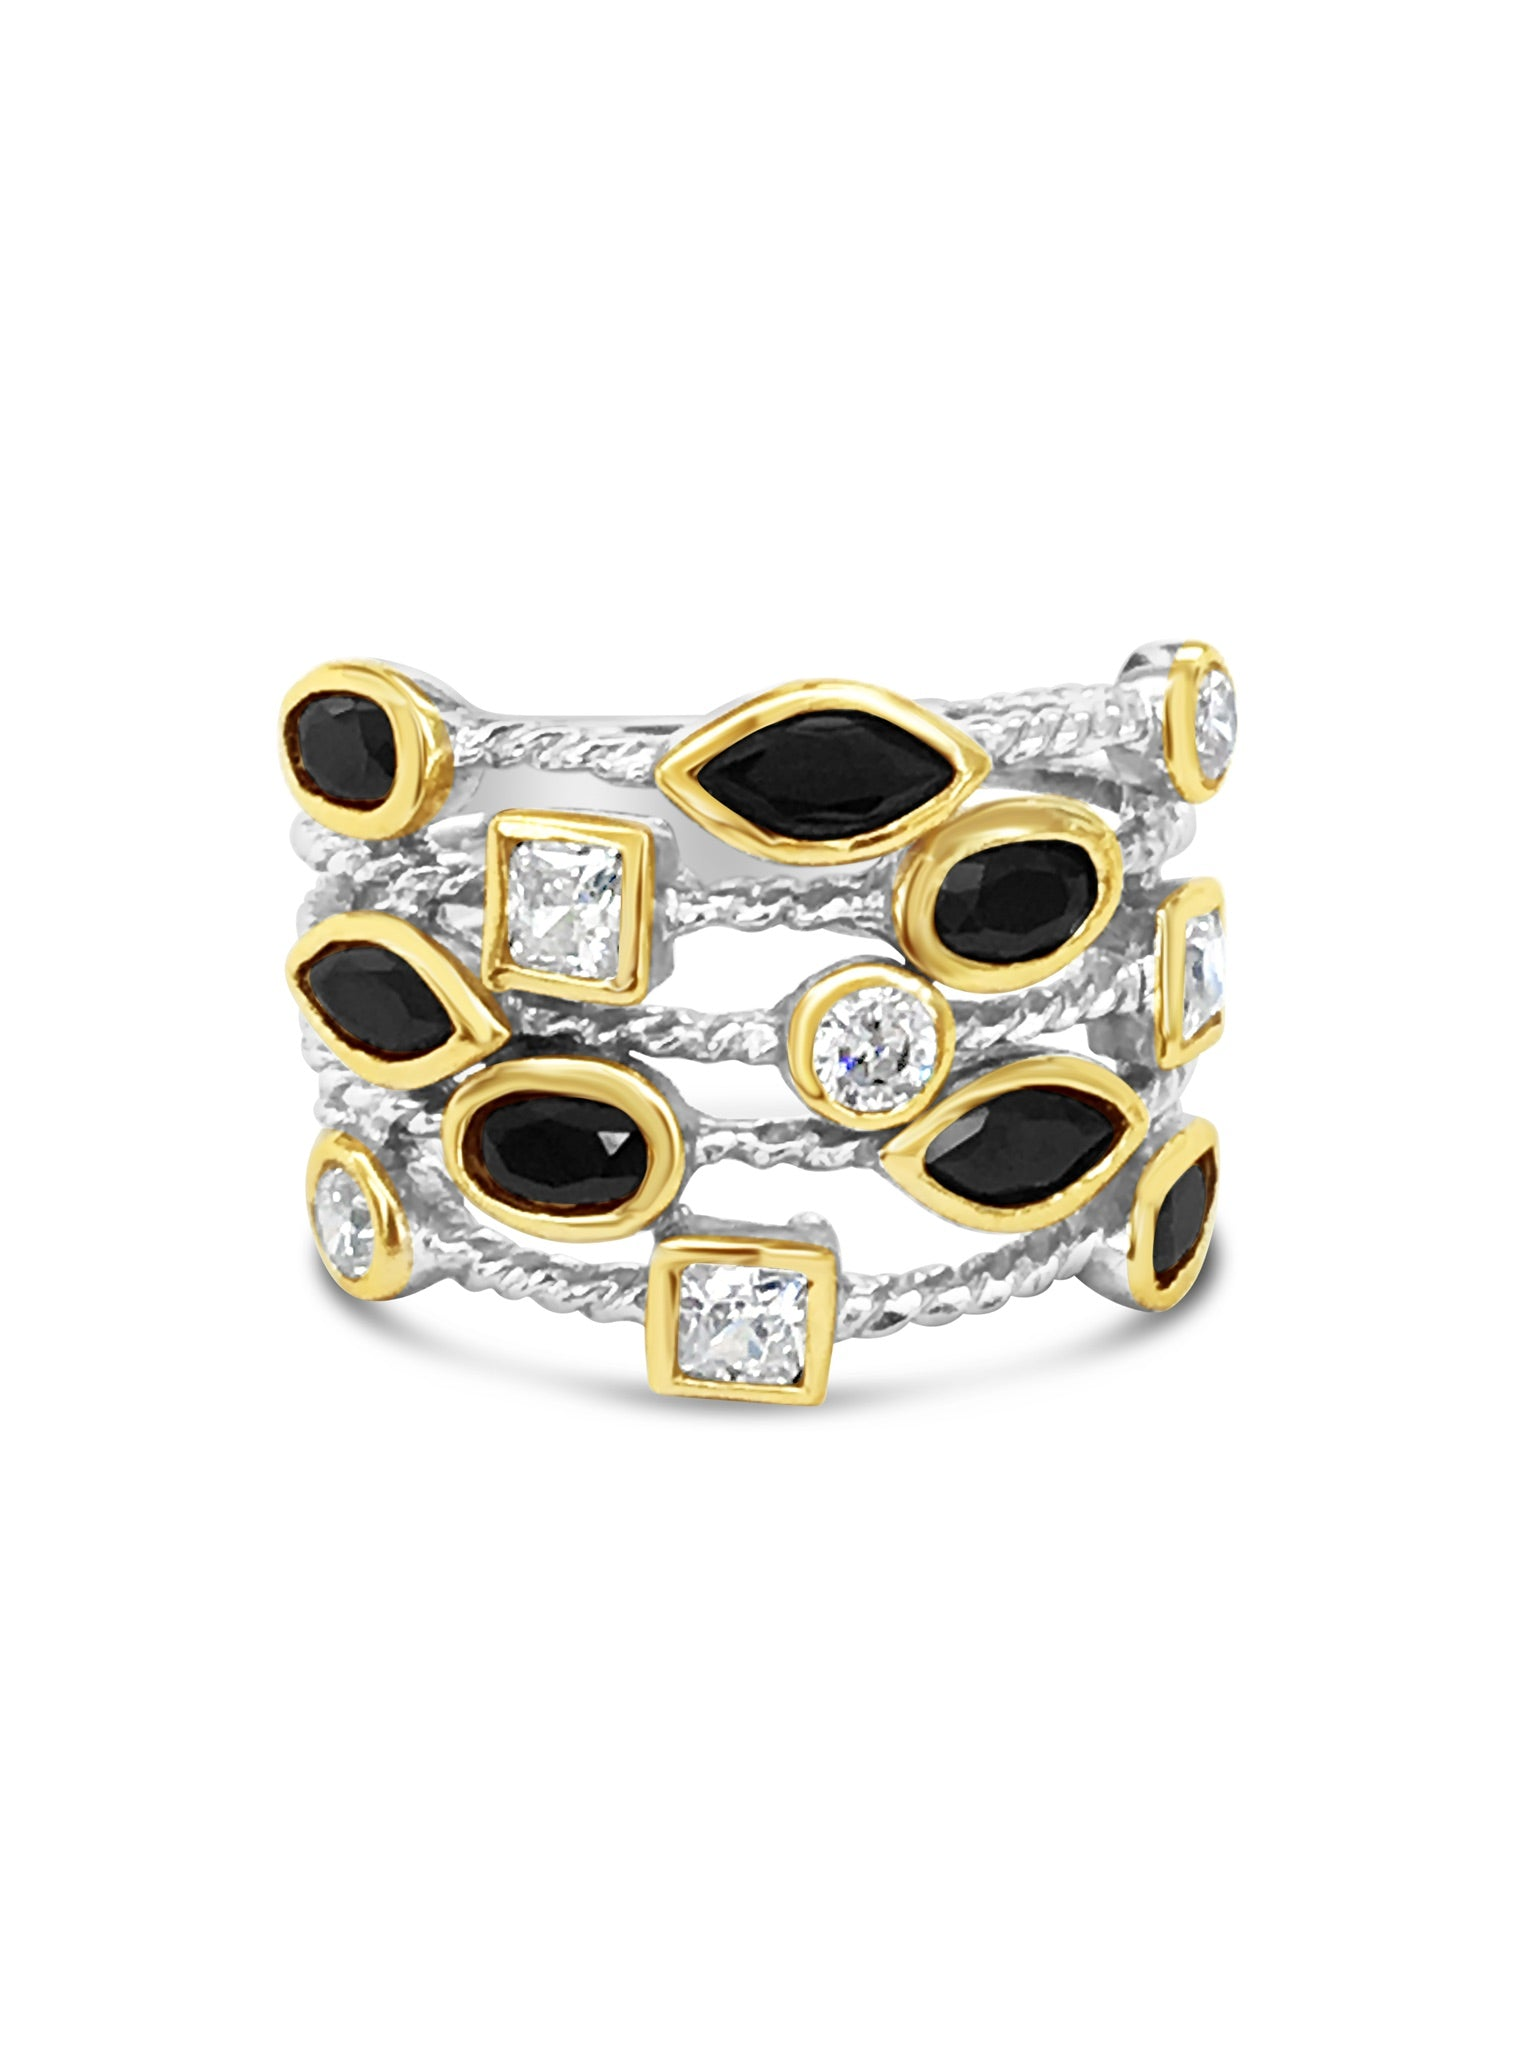 confetti ring david yurman inspired silver ring black and white crystals